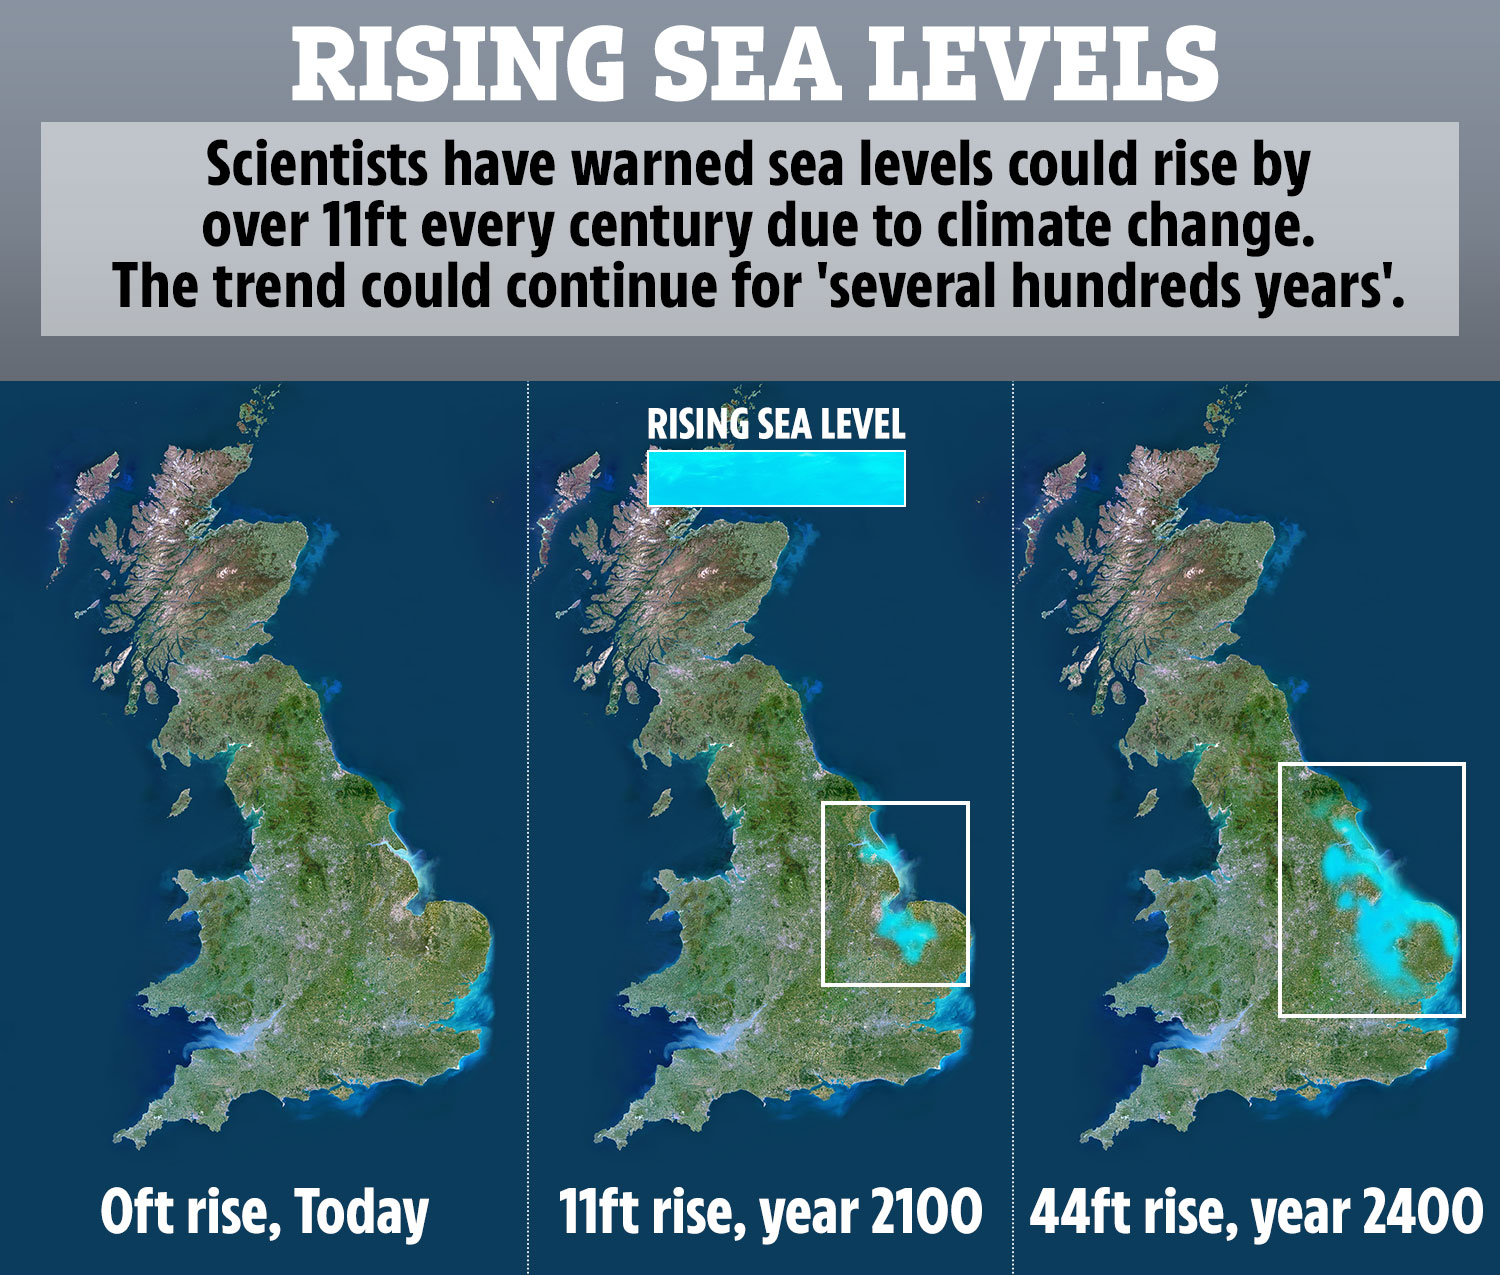 Extreme sea level rise of 11 FEET a century could drown major cities by 2100